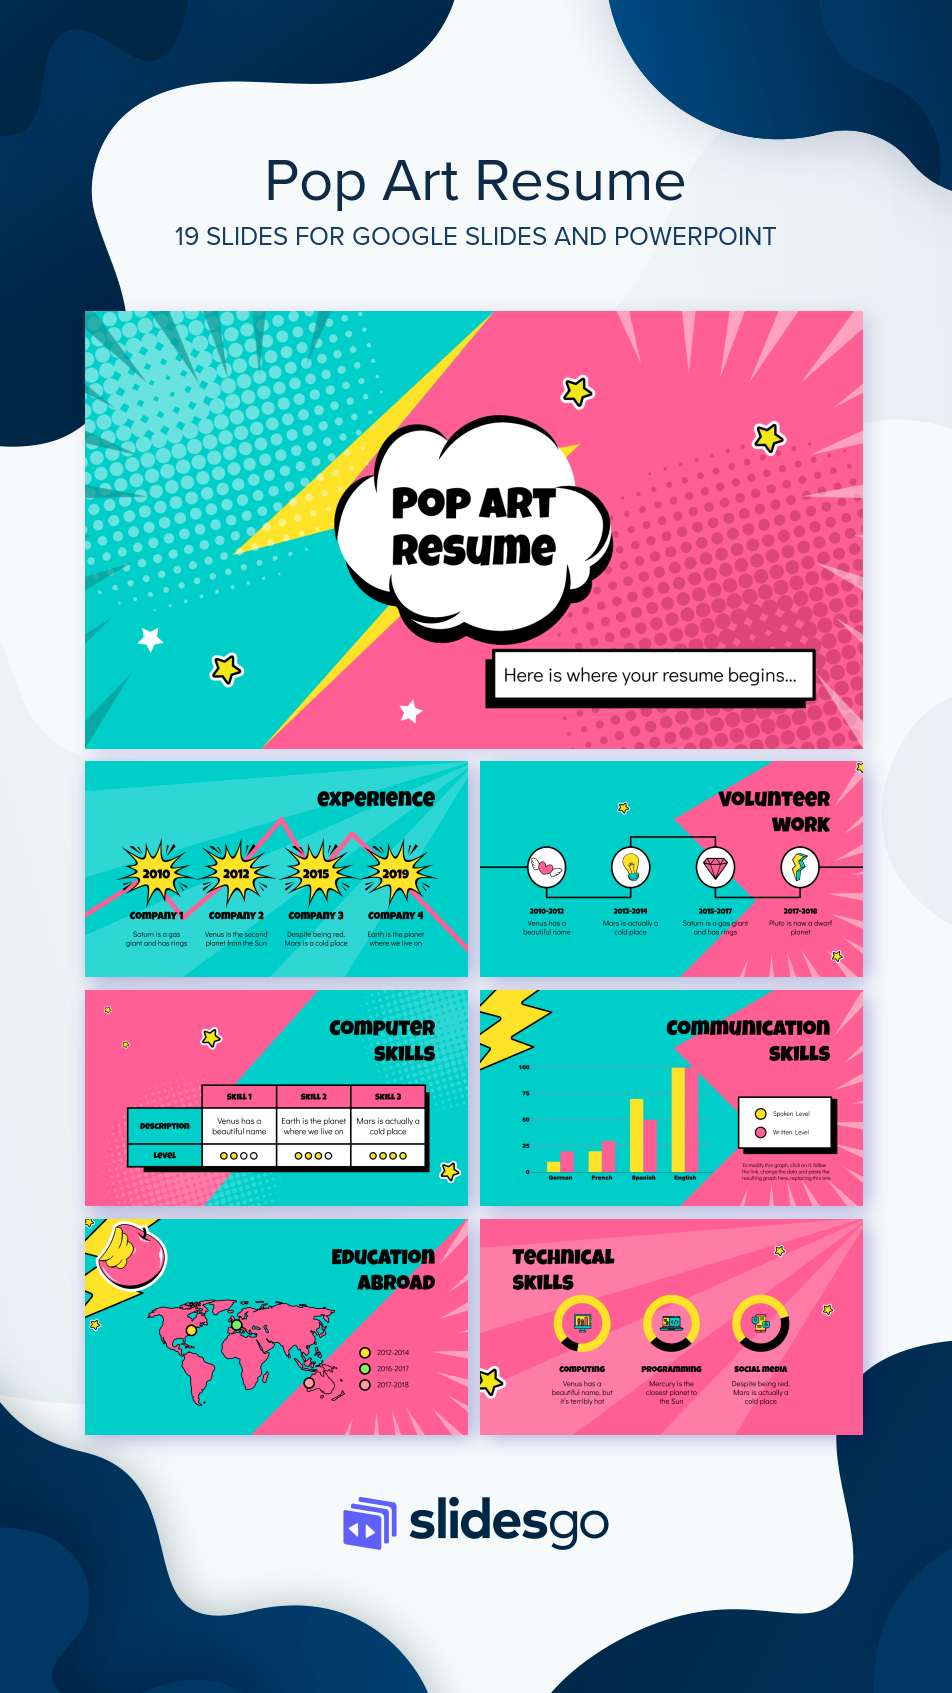 pop art resume google slides theme and powerpoint template